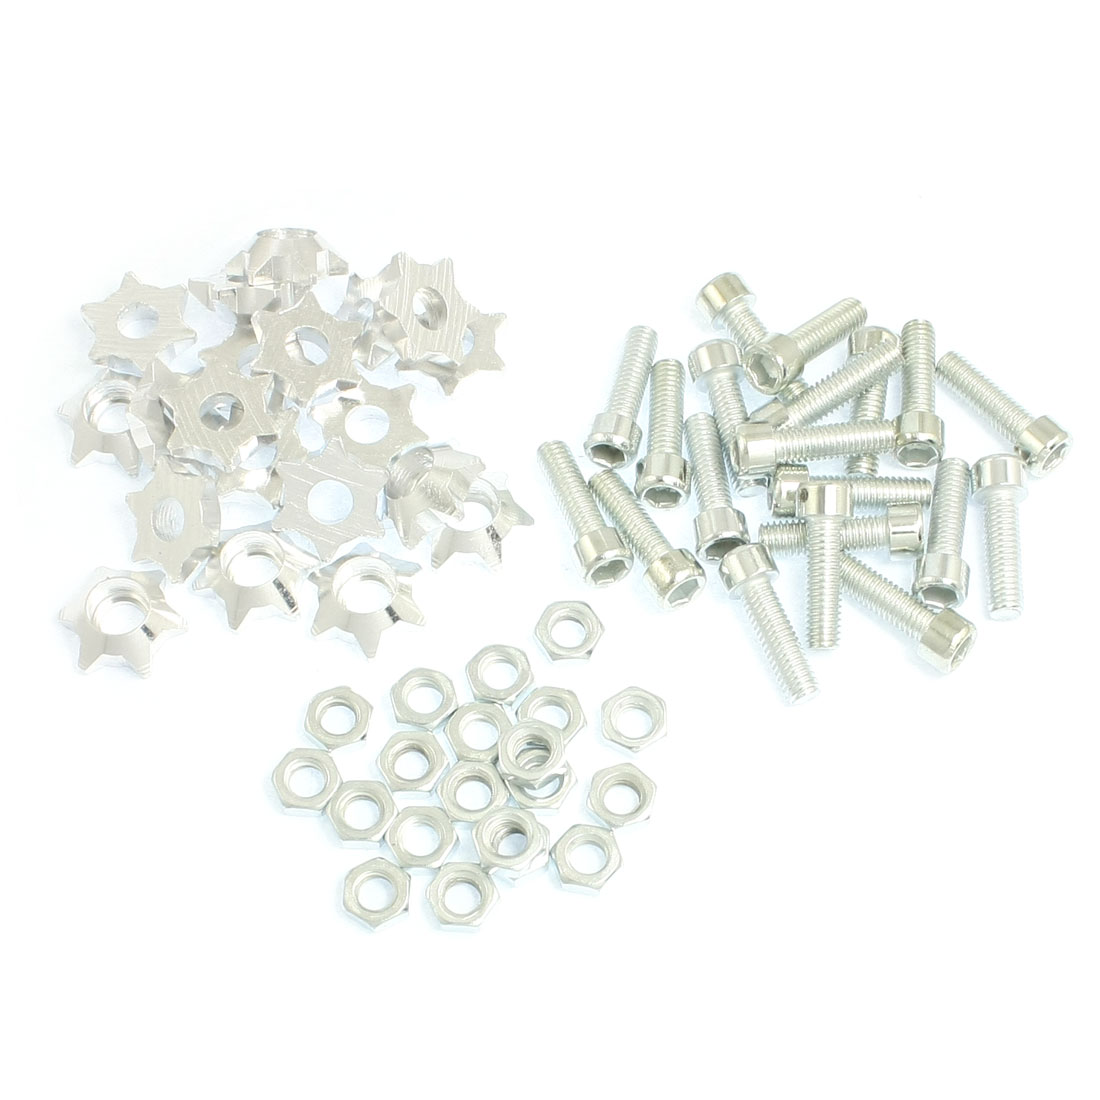 20 Pcs Silver Tone Alloy Star Shaped Car License Plate Bolt Screw